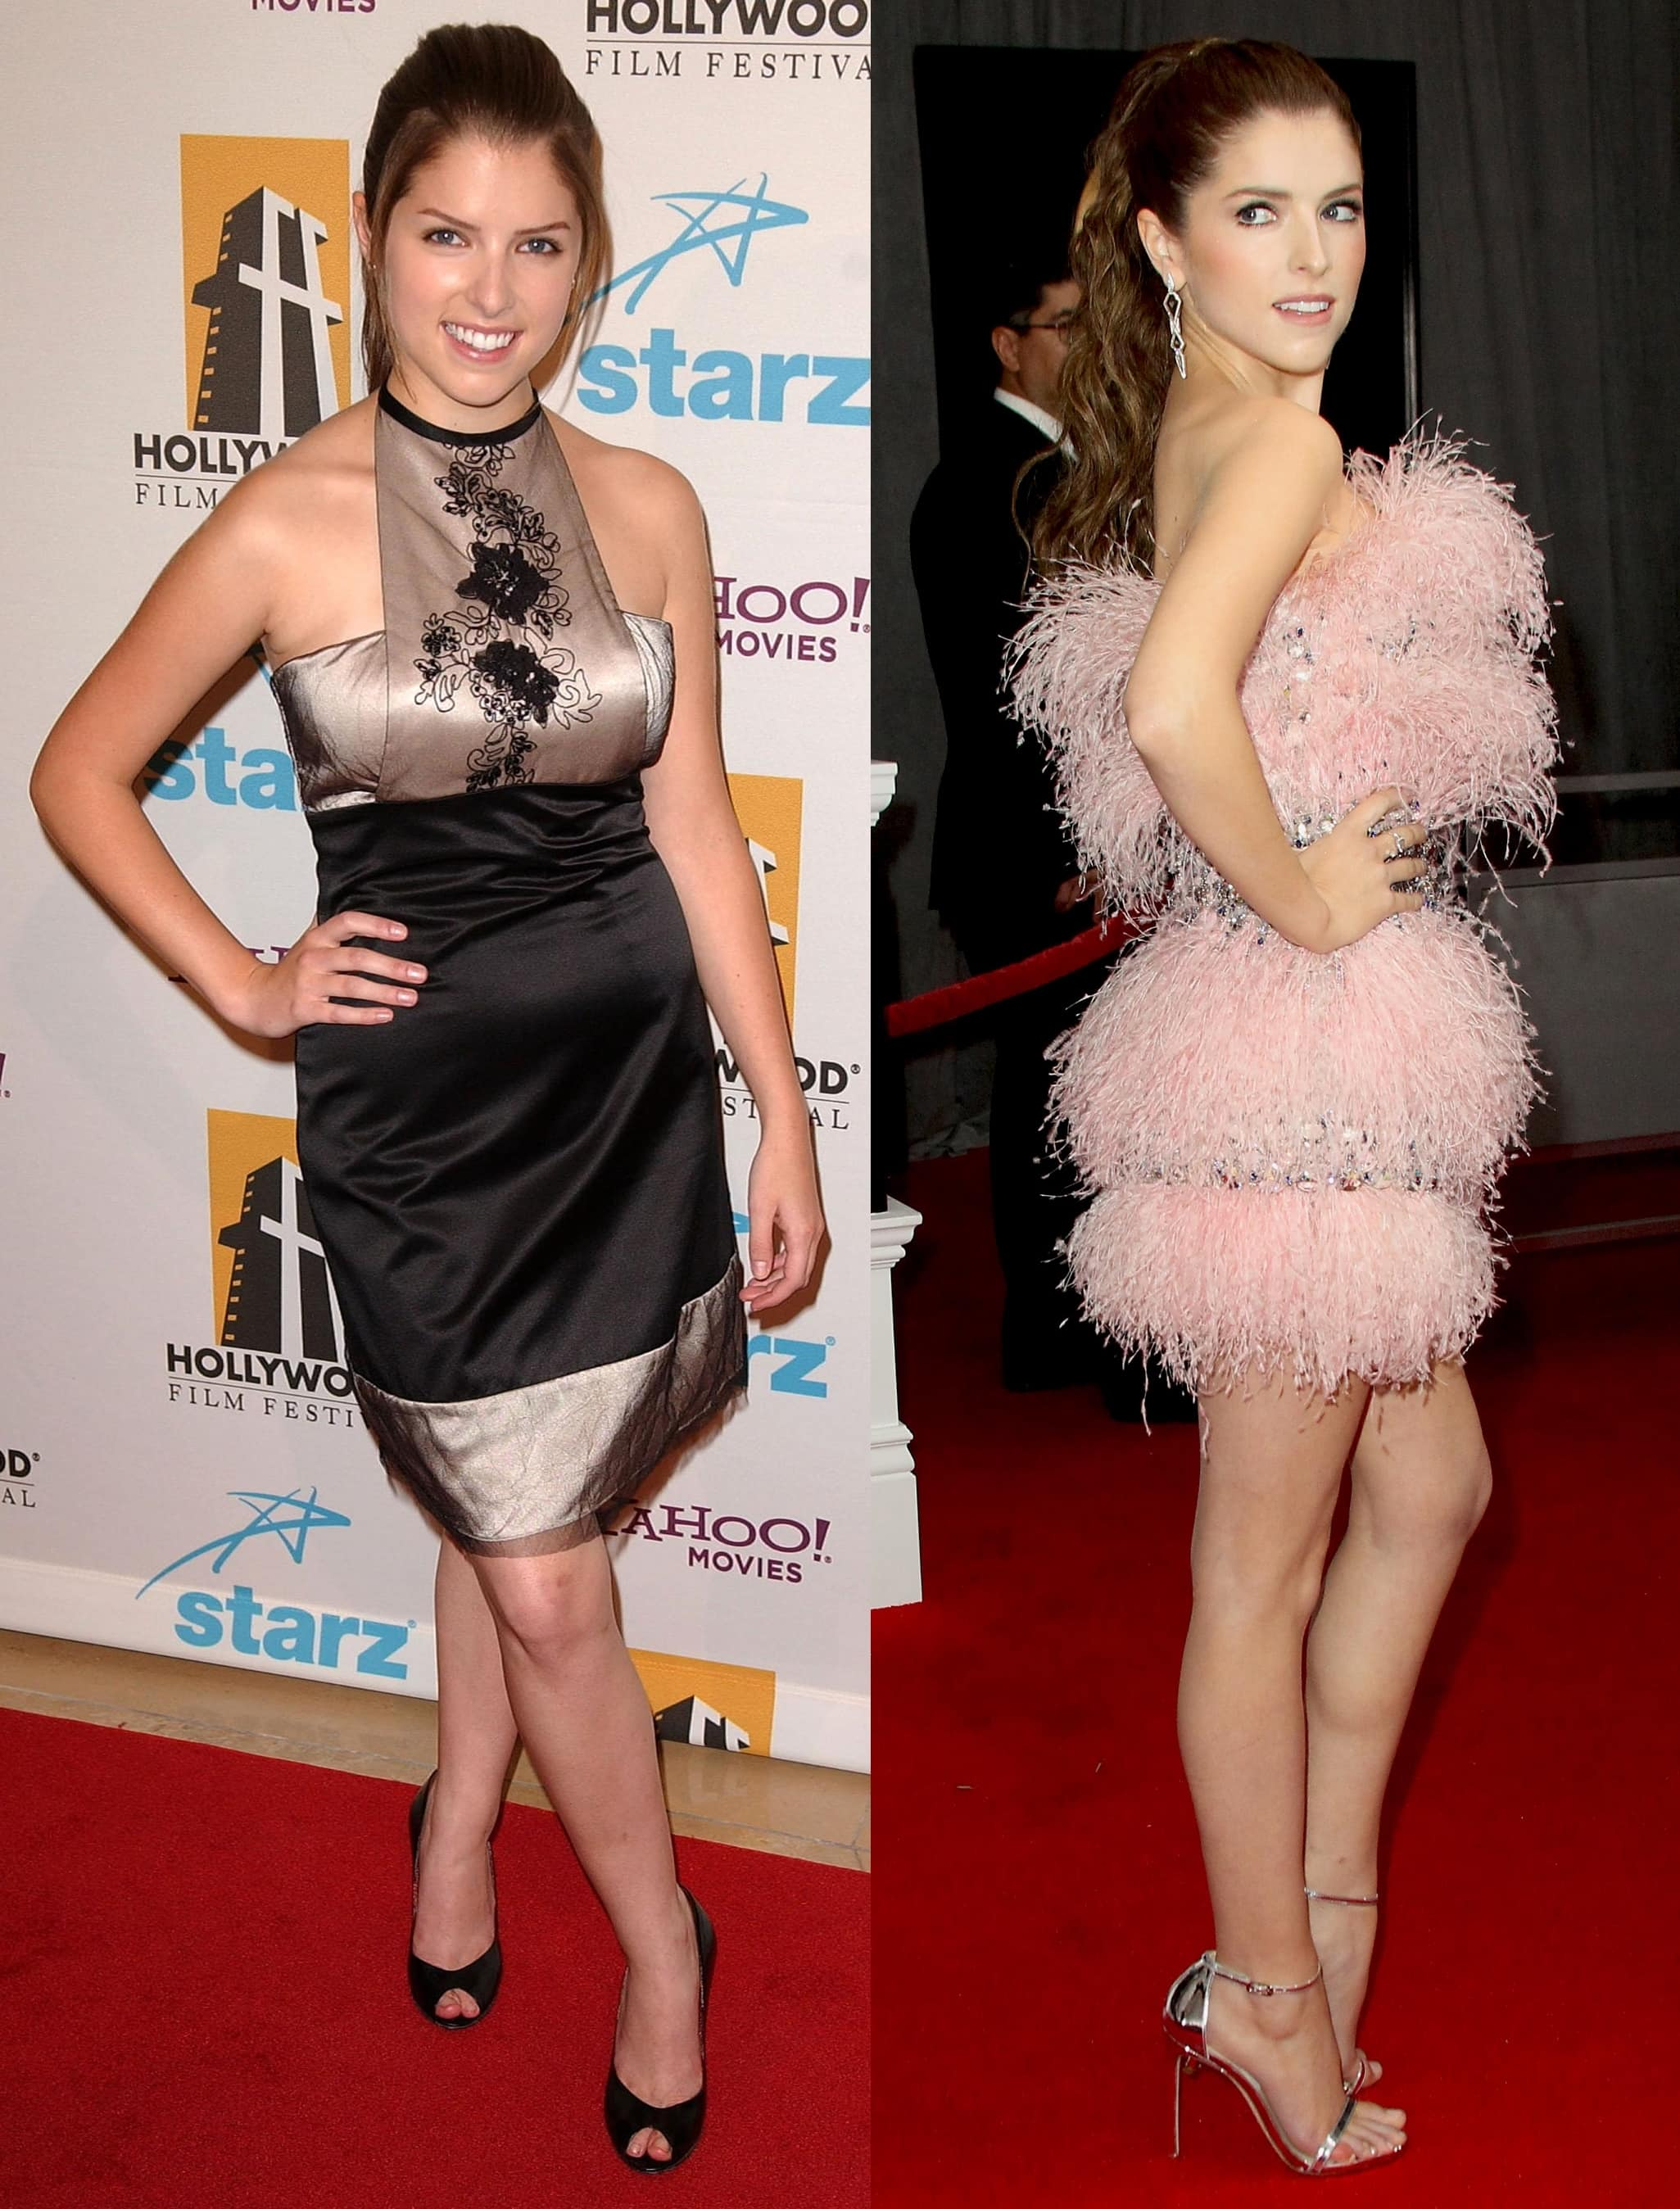 Not confident about her height growing up, Anna Kendrick wears high heels to make her legs look longer